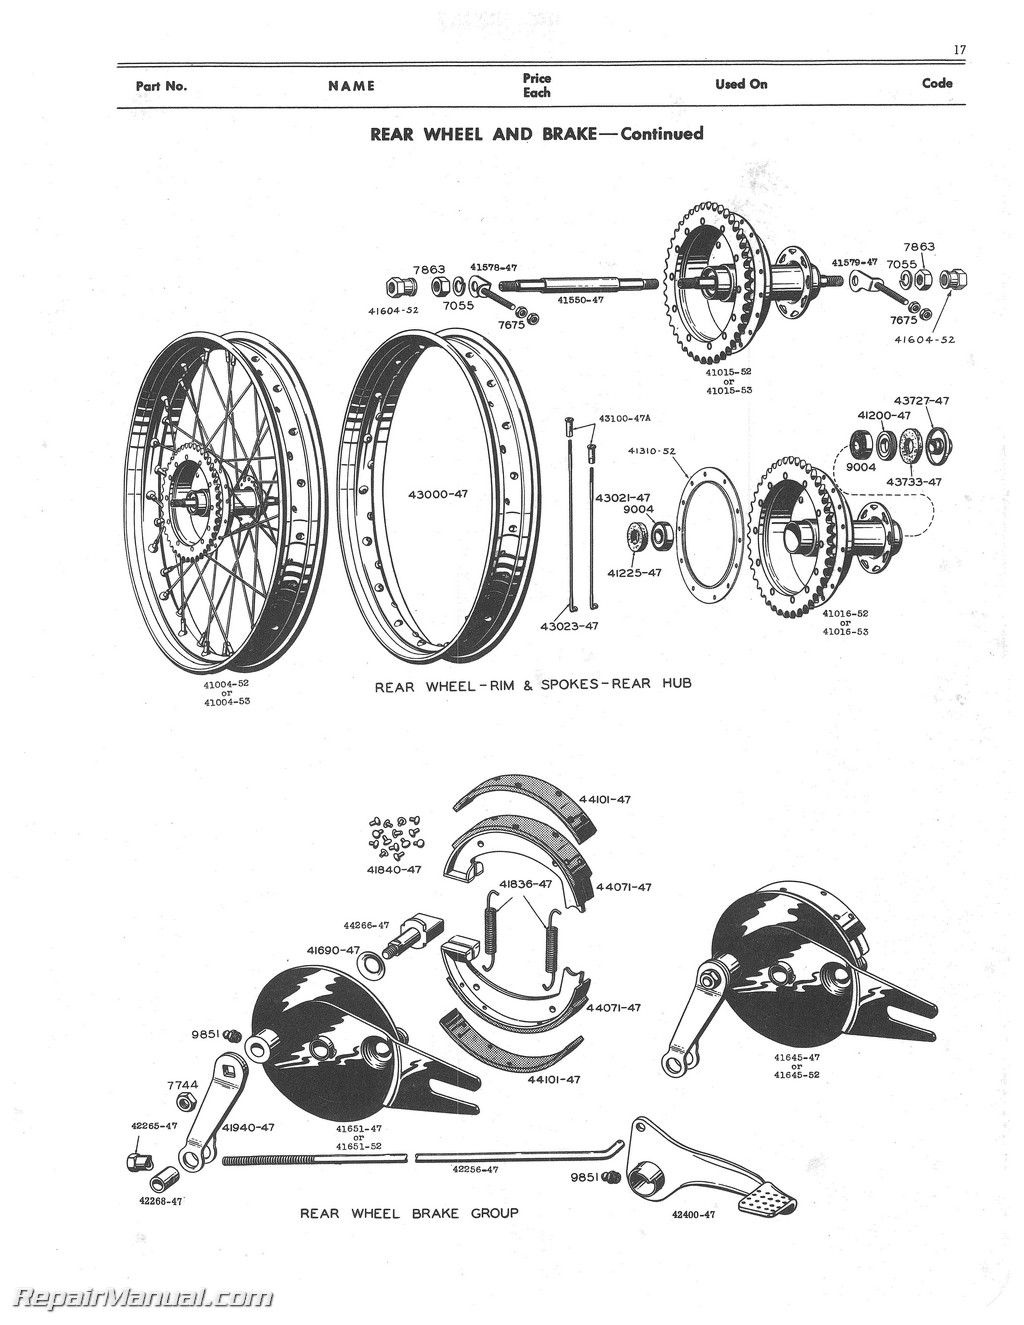 125cc Engine Parts Diagram Wiring Schematic Start Building A Pit Bike Cdi Harley Davidson 125 165 1948 1953 Motorcycle Spare Manual Rh Repairmanual Com 110cc Mini Chopper Ssr